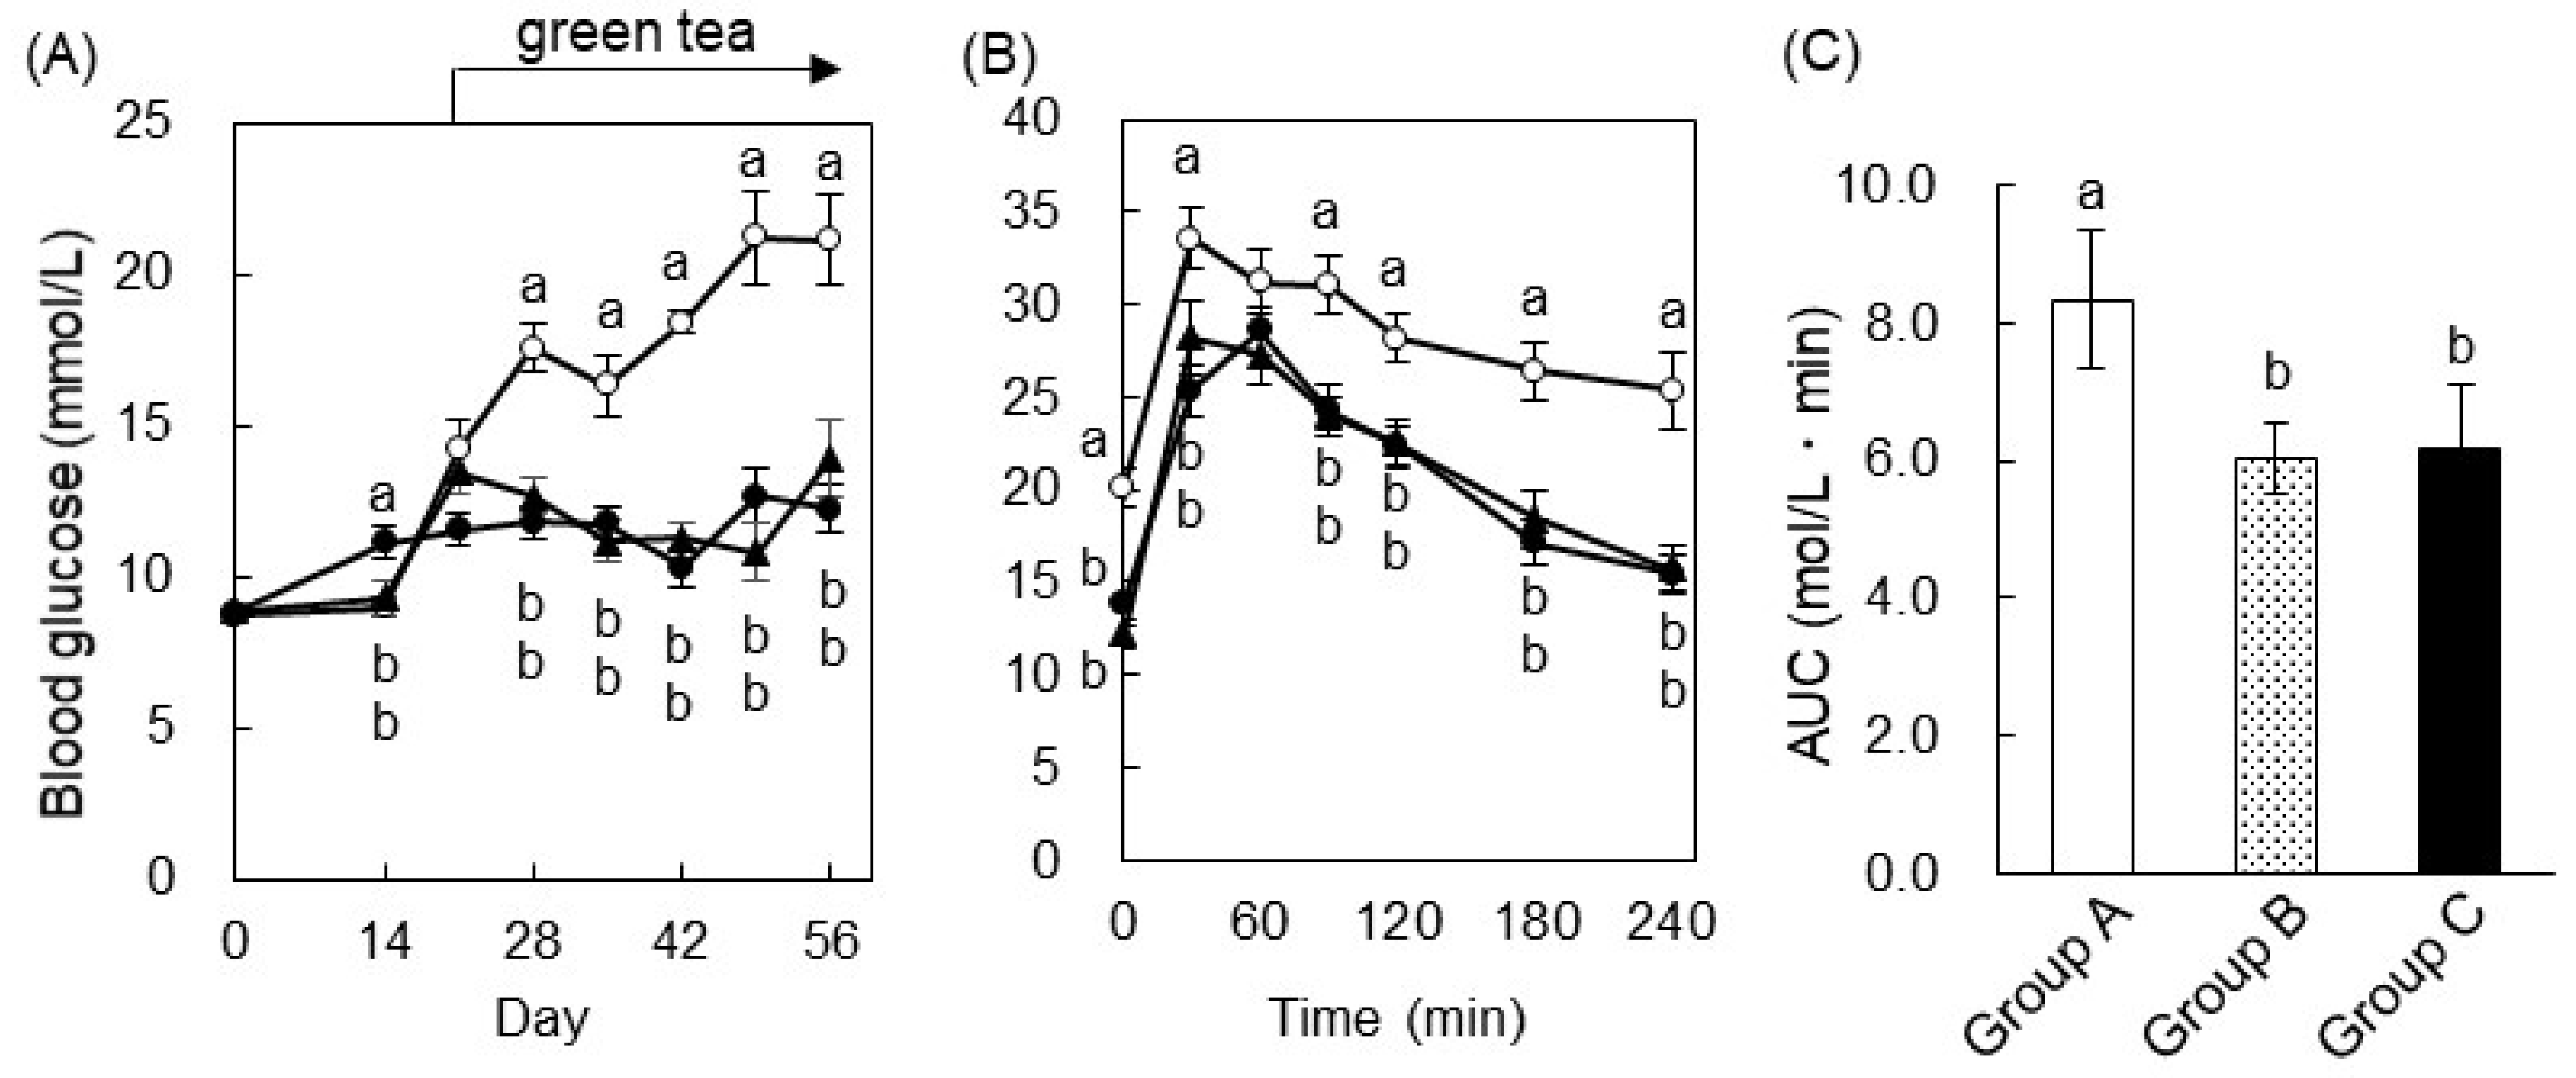 IJMS | Free Full-Text | Green Tea Ameliorates Hyperglycemia